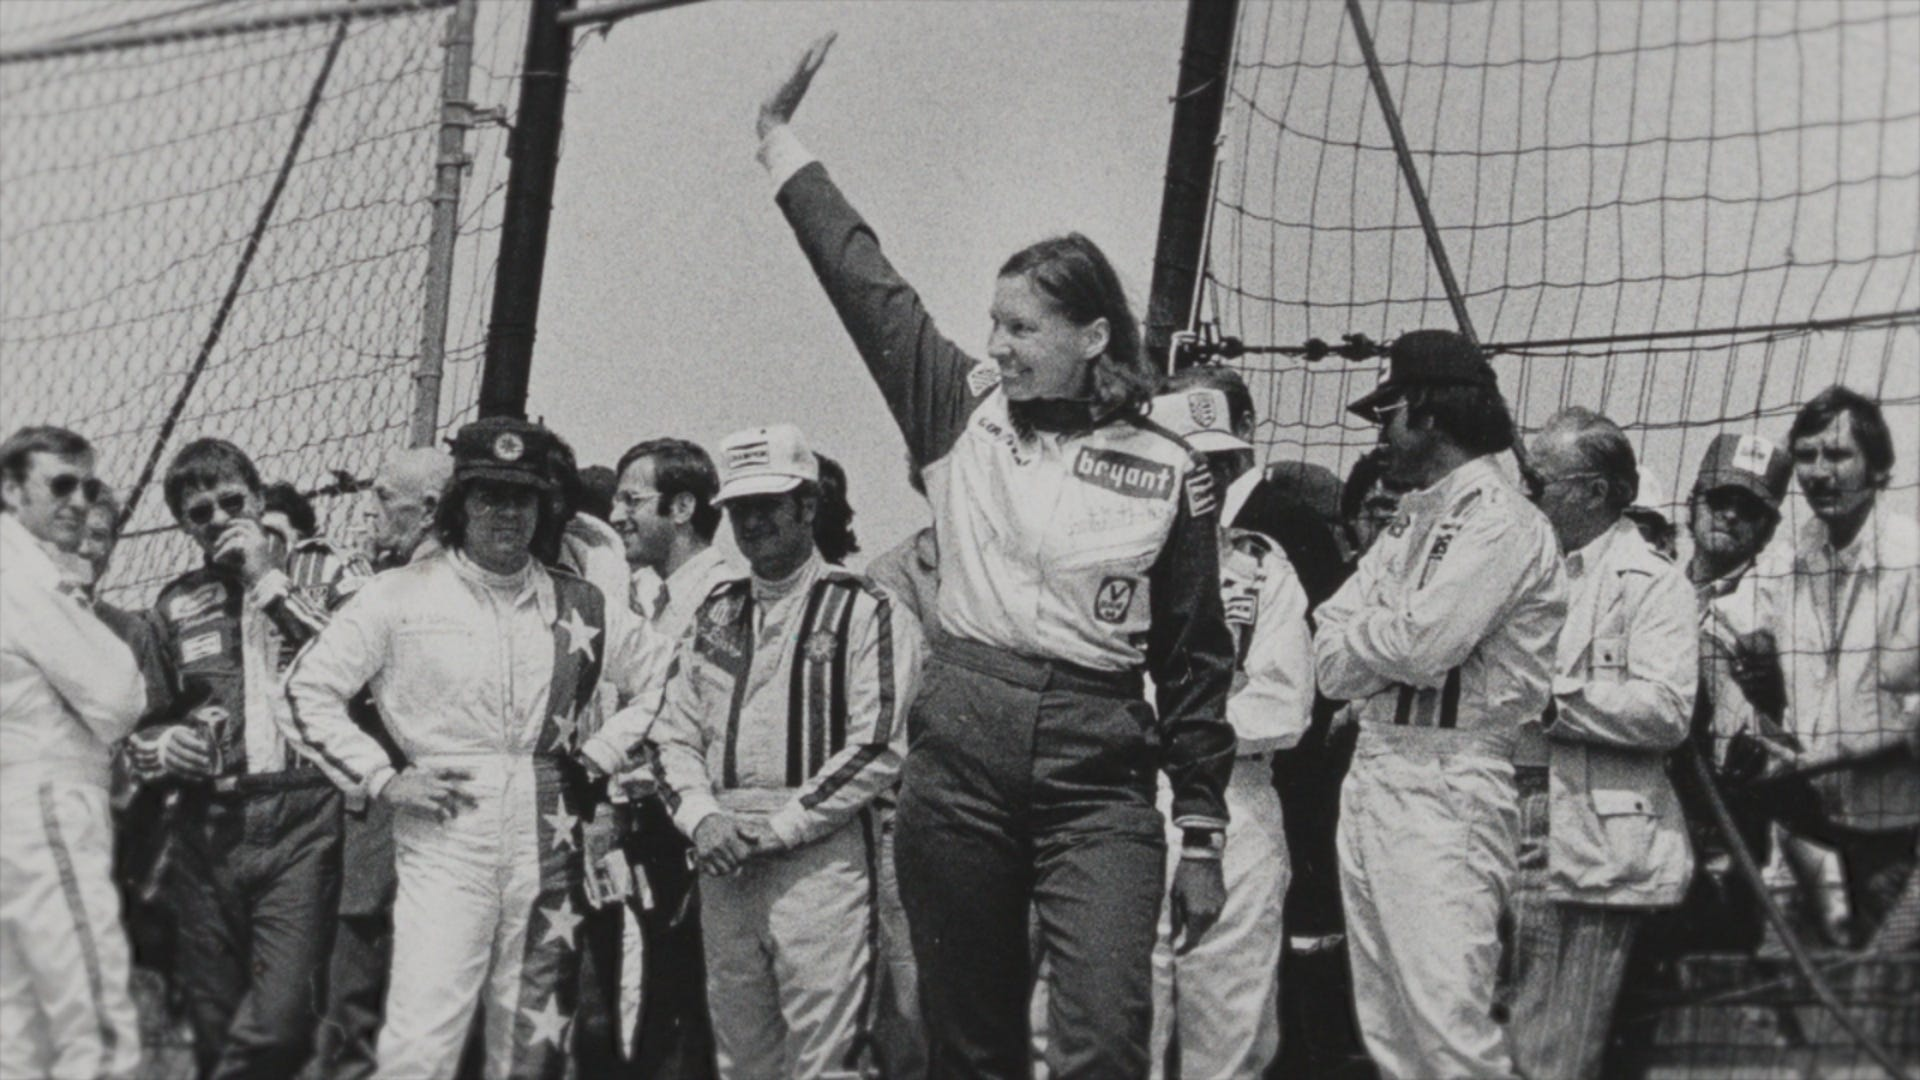 Racing trailblazer Janet Guthrie reflects on Indy 500 and sexism in motor sports